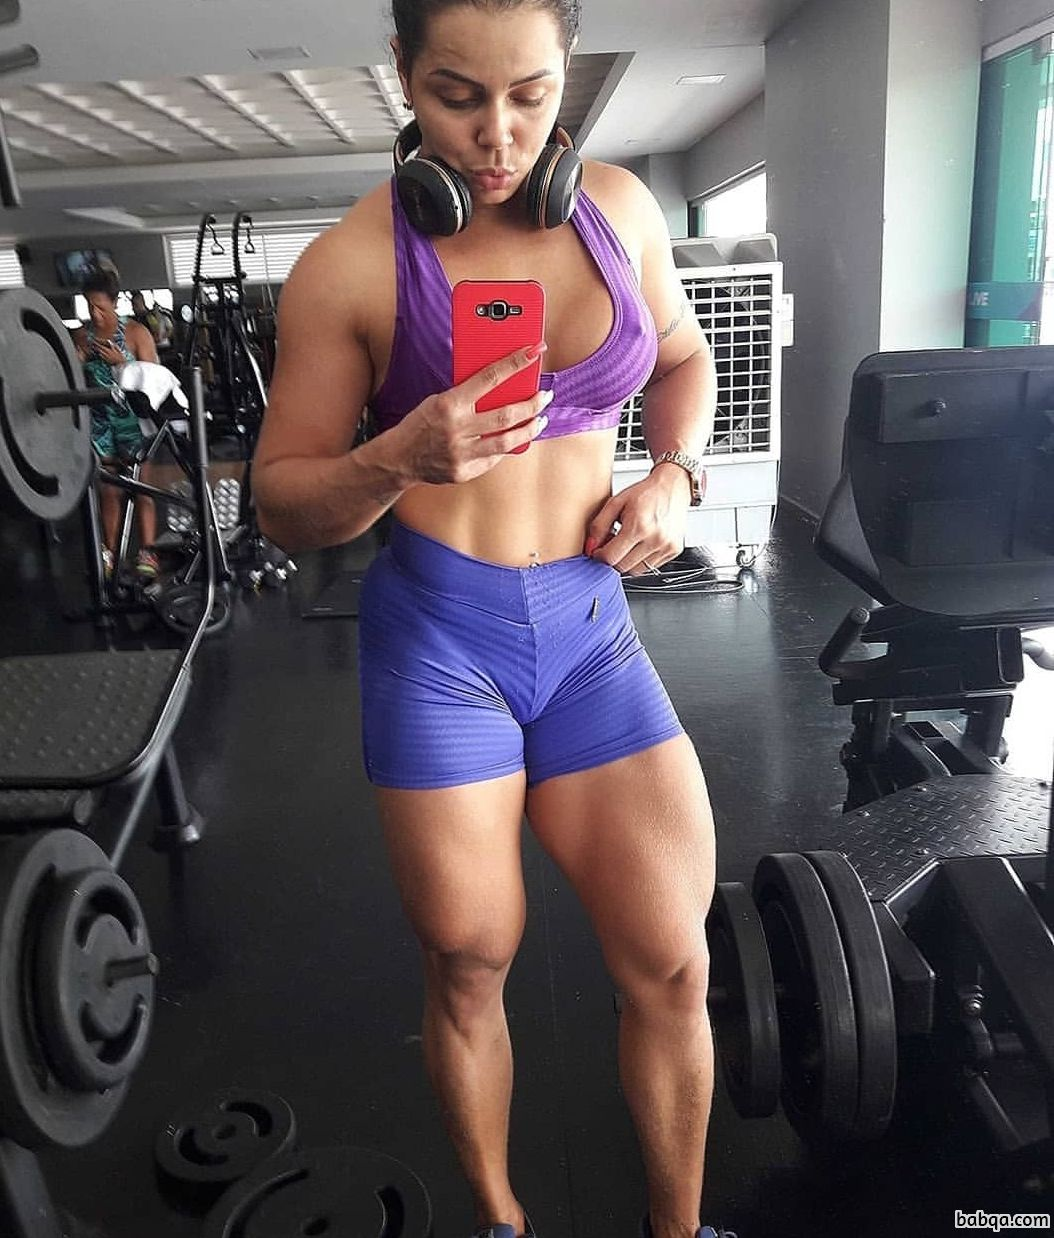 awesome woman with muscular body and muscle legs post from instagram